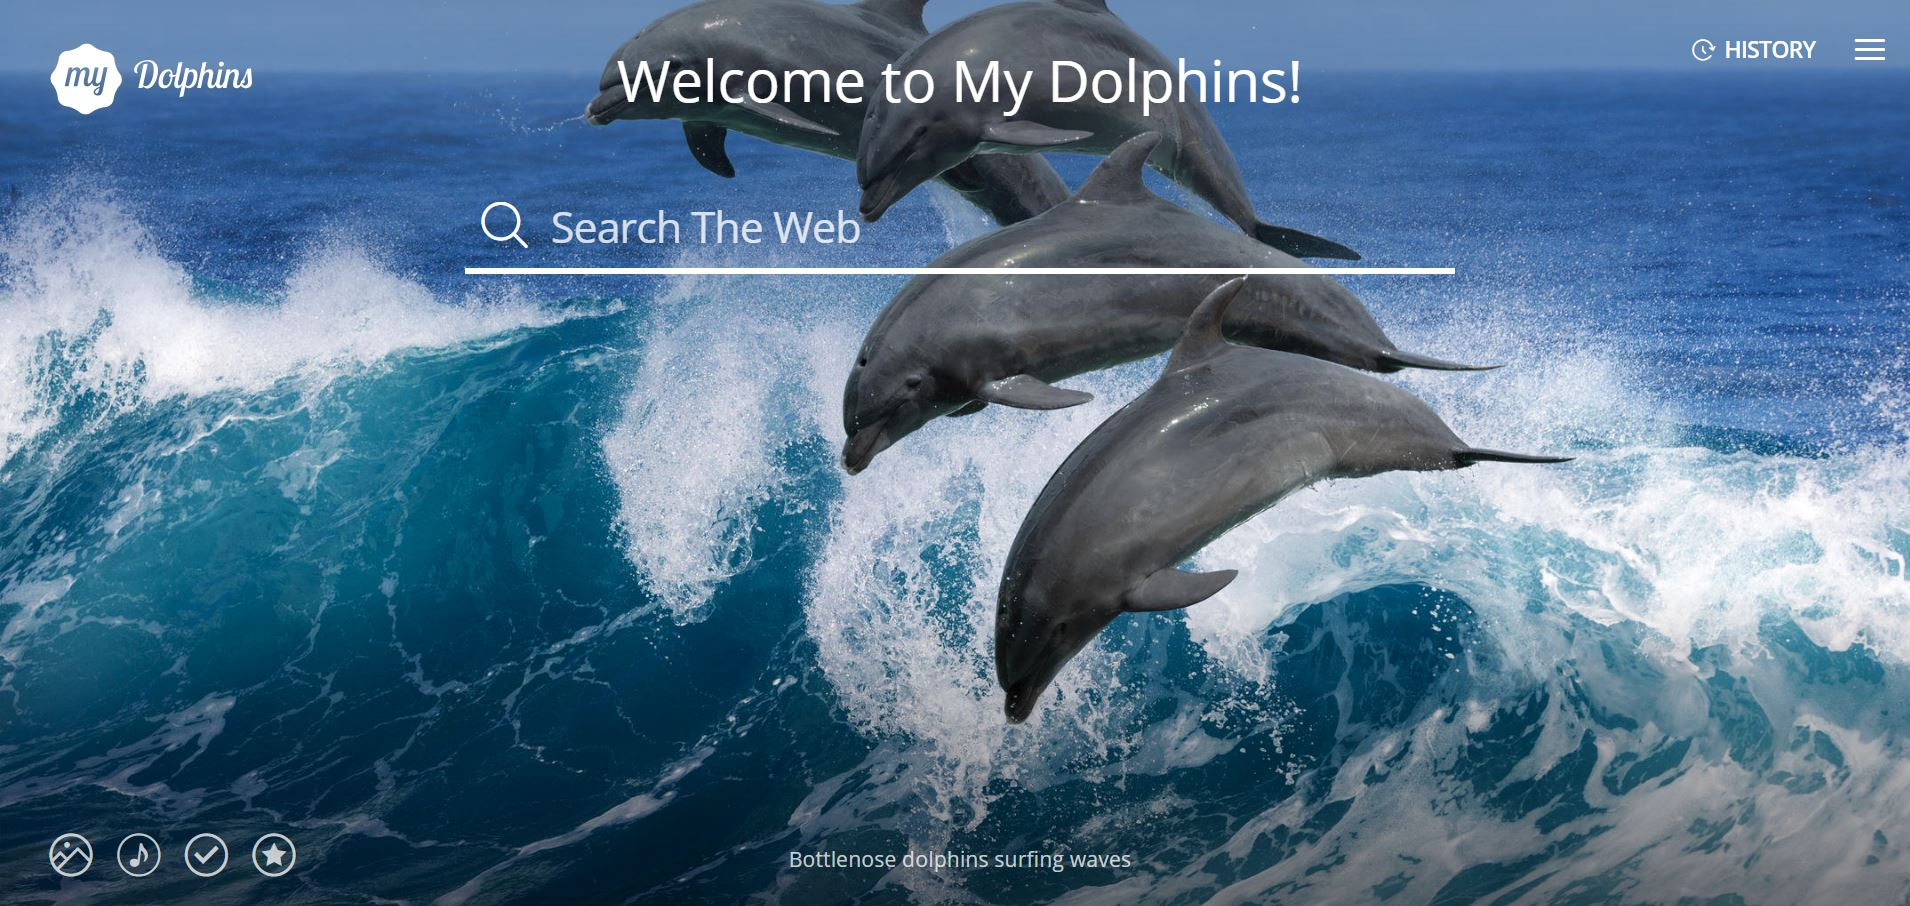 My Dolphins pictures